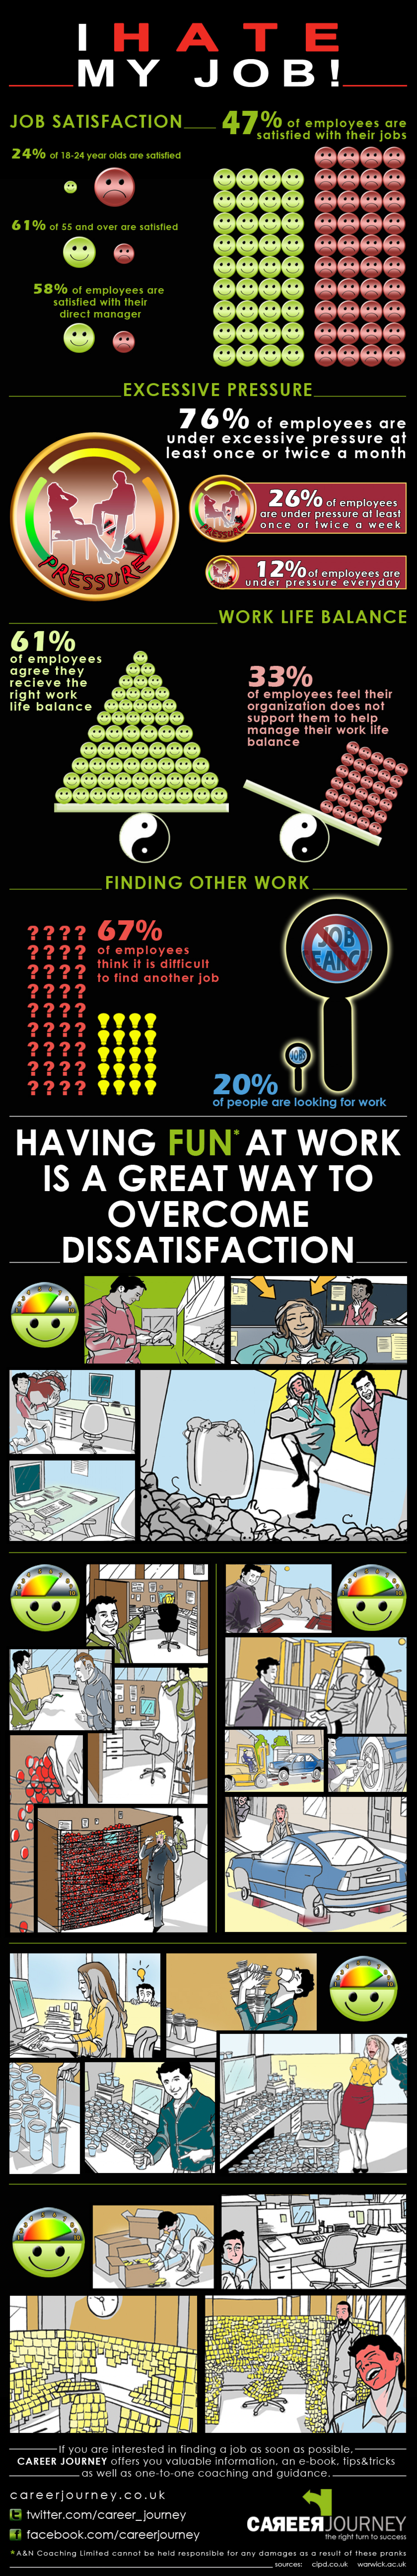 I HATE MY JOB INFOGRAPHIC Infographic